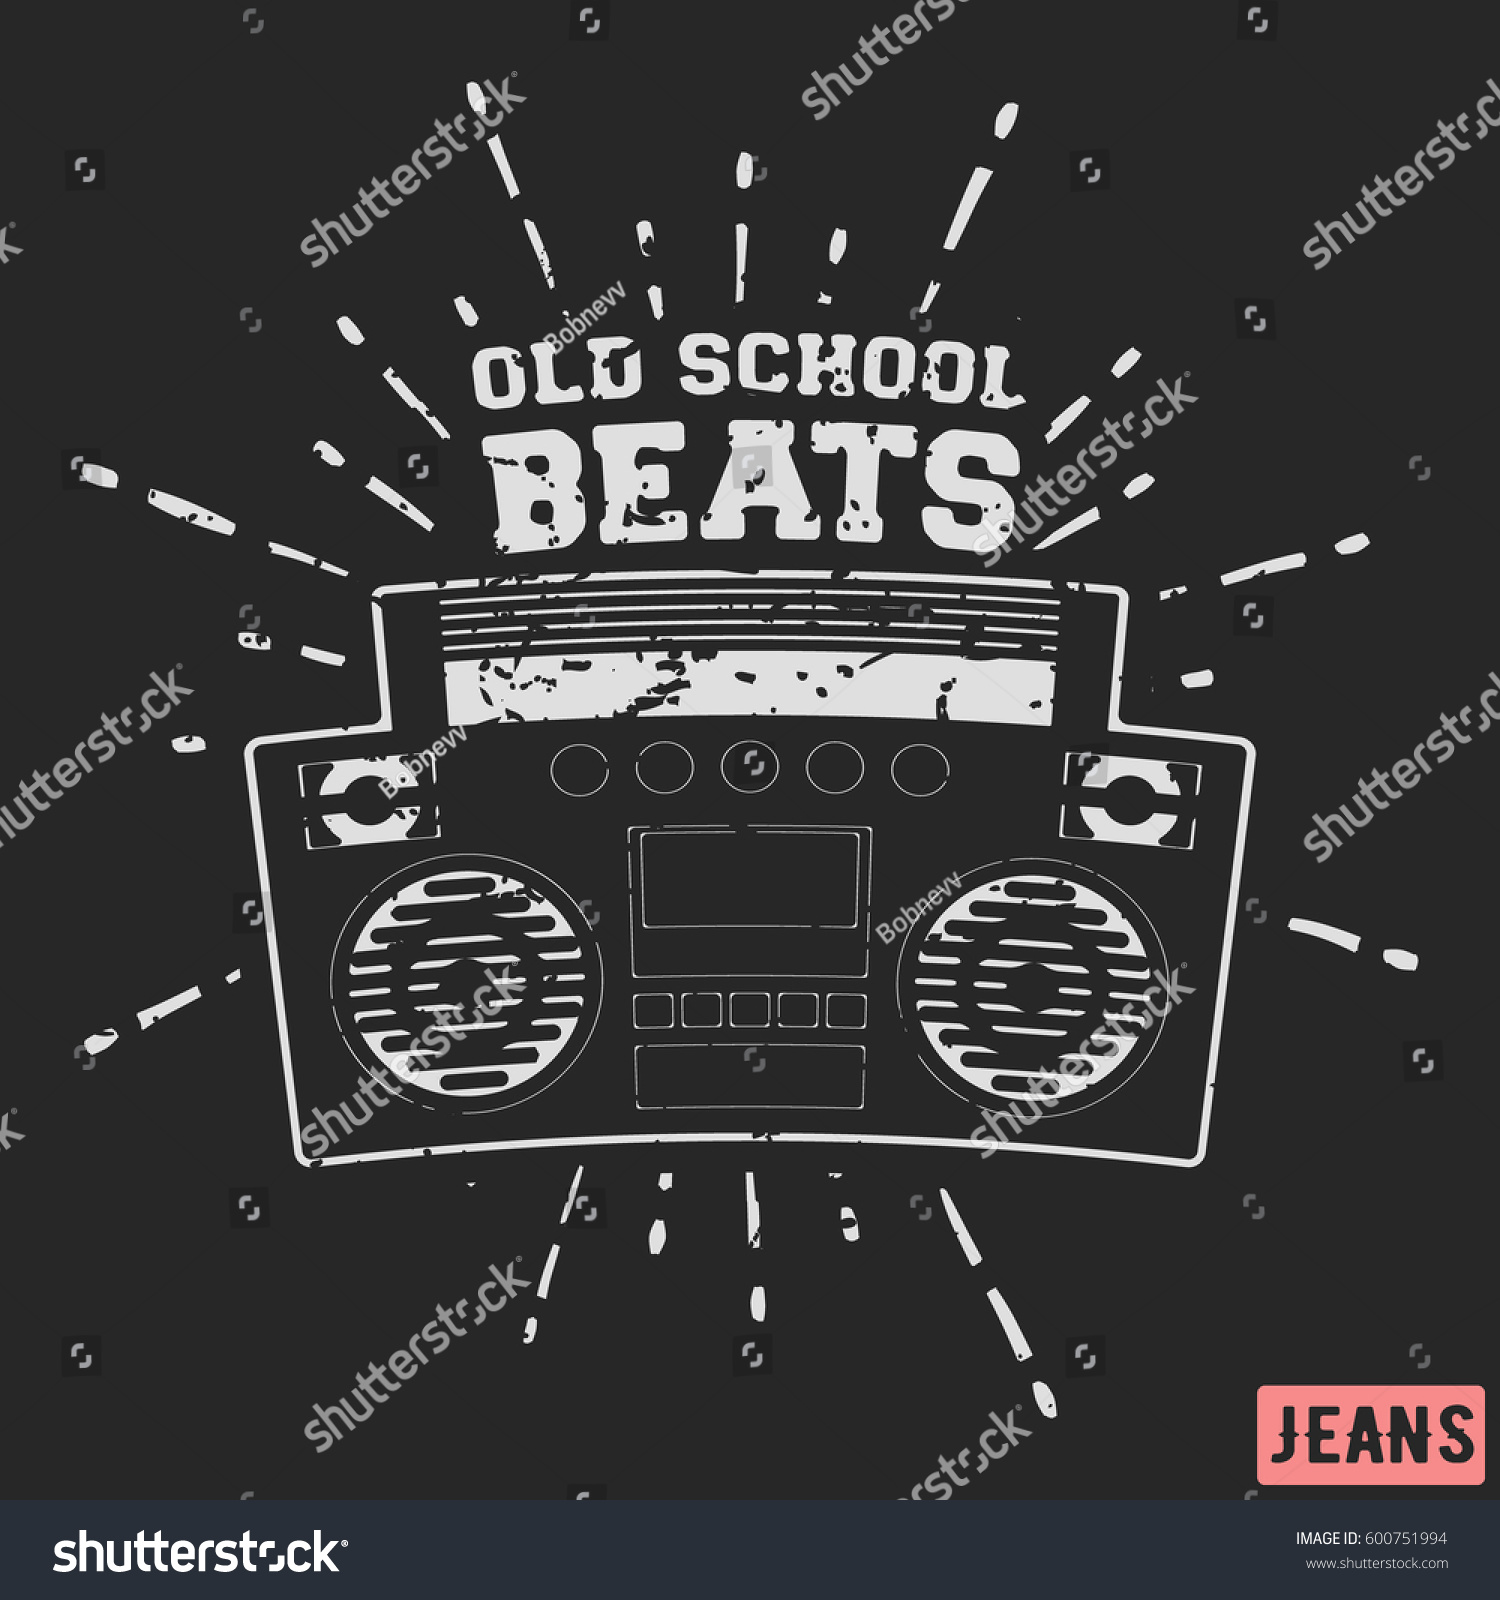 Design t shirt label - T Shirt Print Design Ghetto Blaster Vintage Stamp Printing And Badge Applique Label